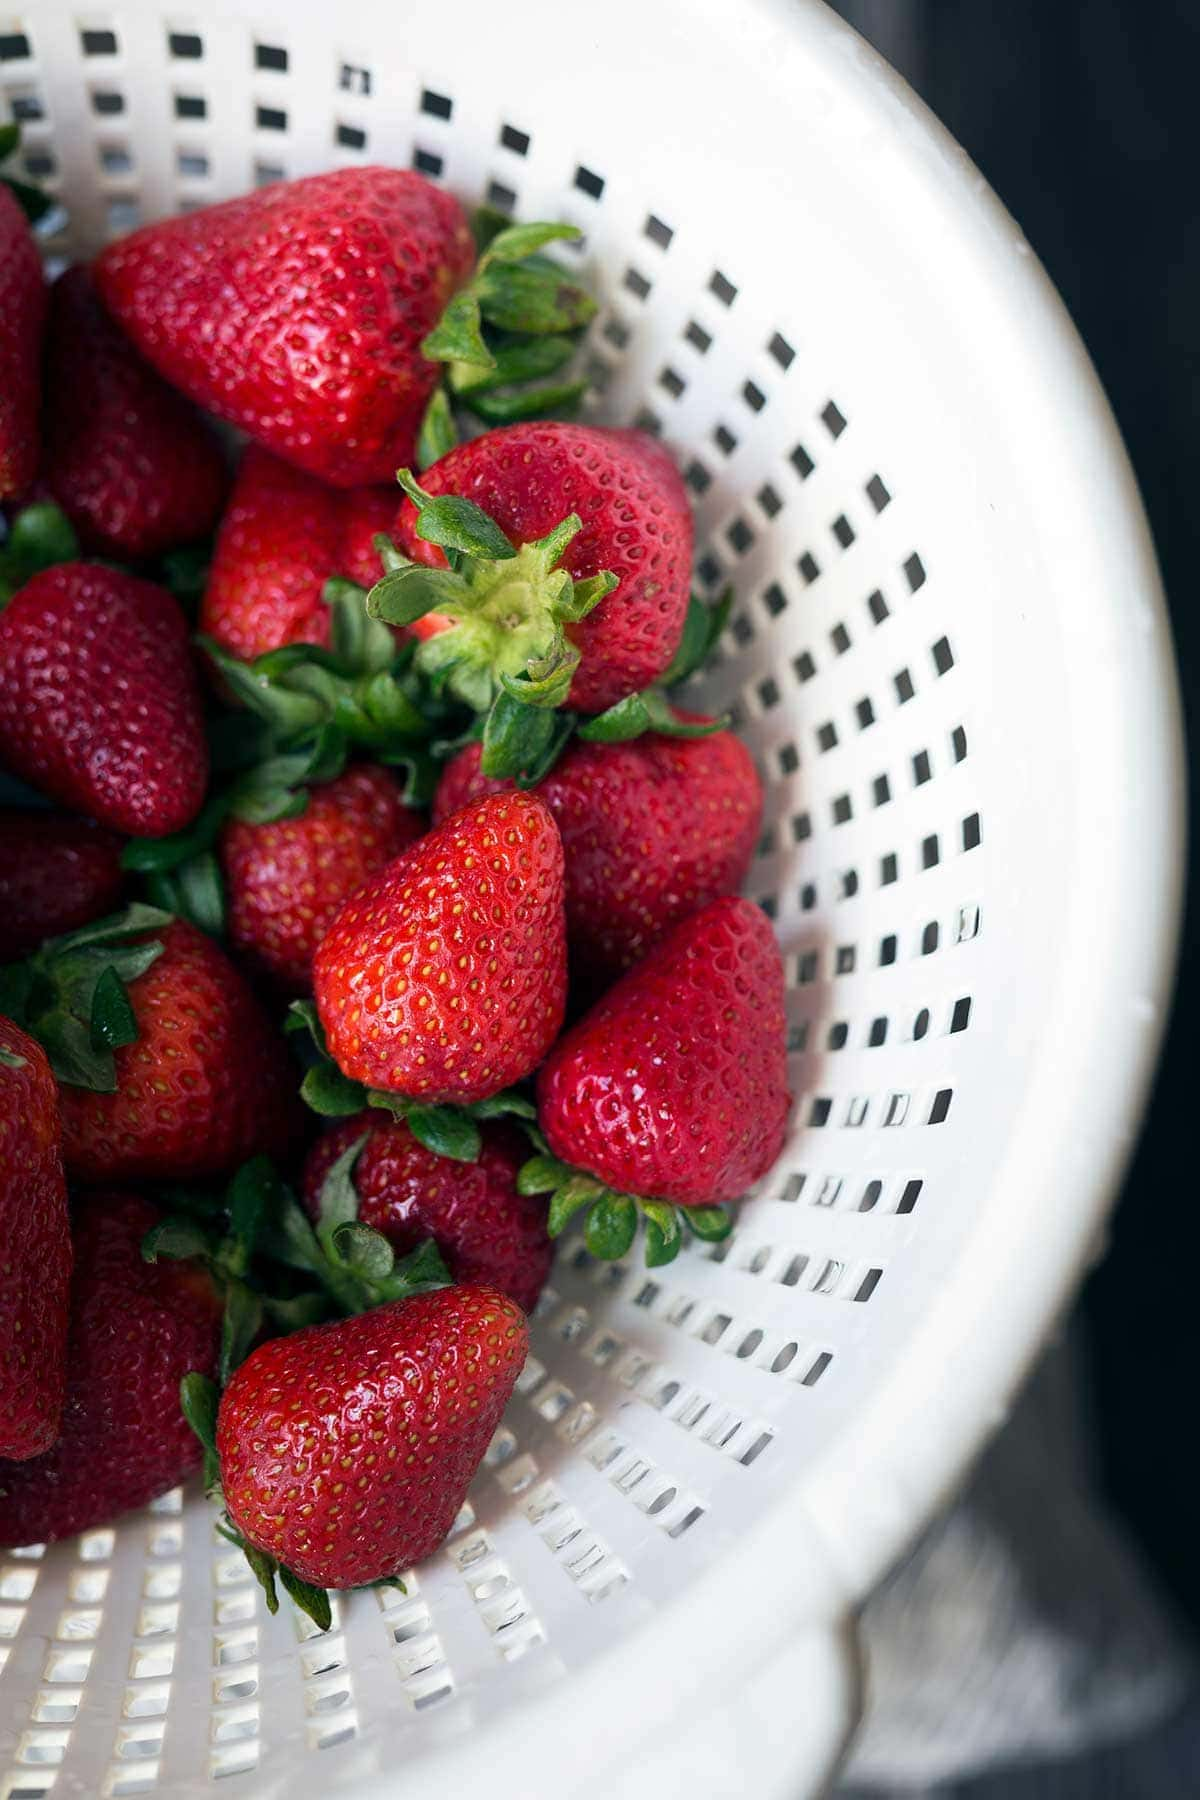 Fresh strawberries with bright green leaves in a white colander.